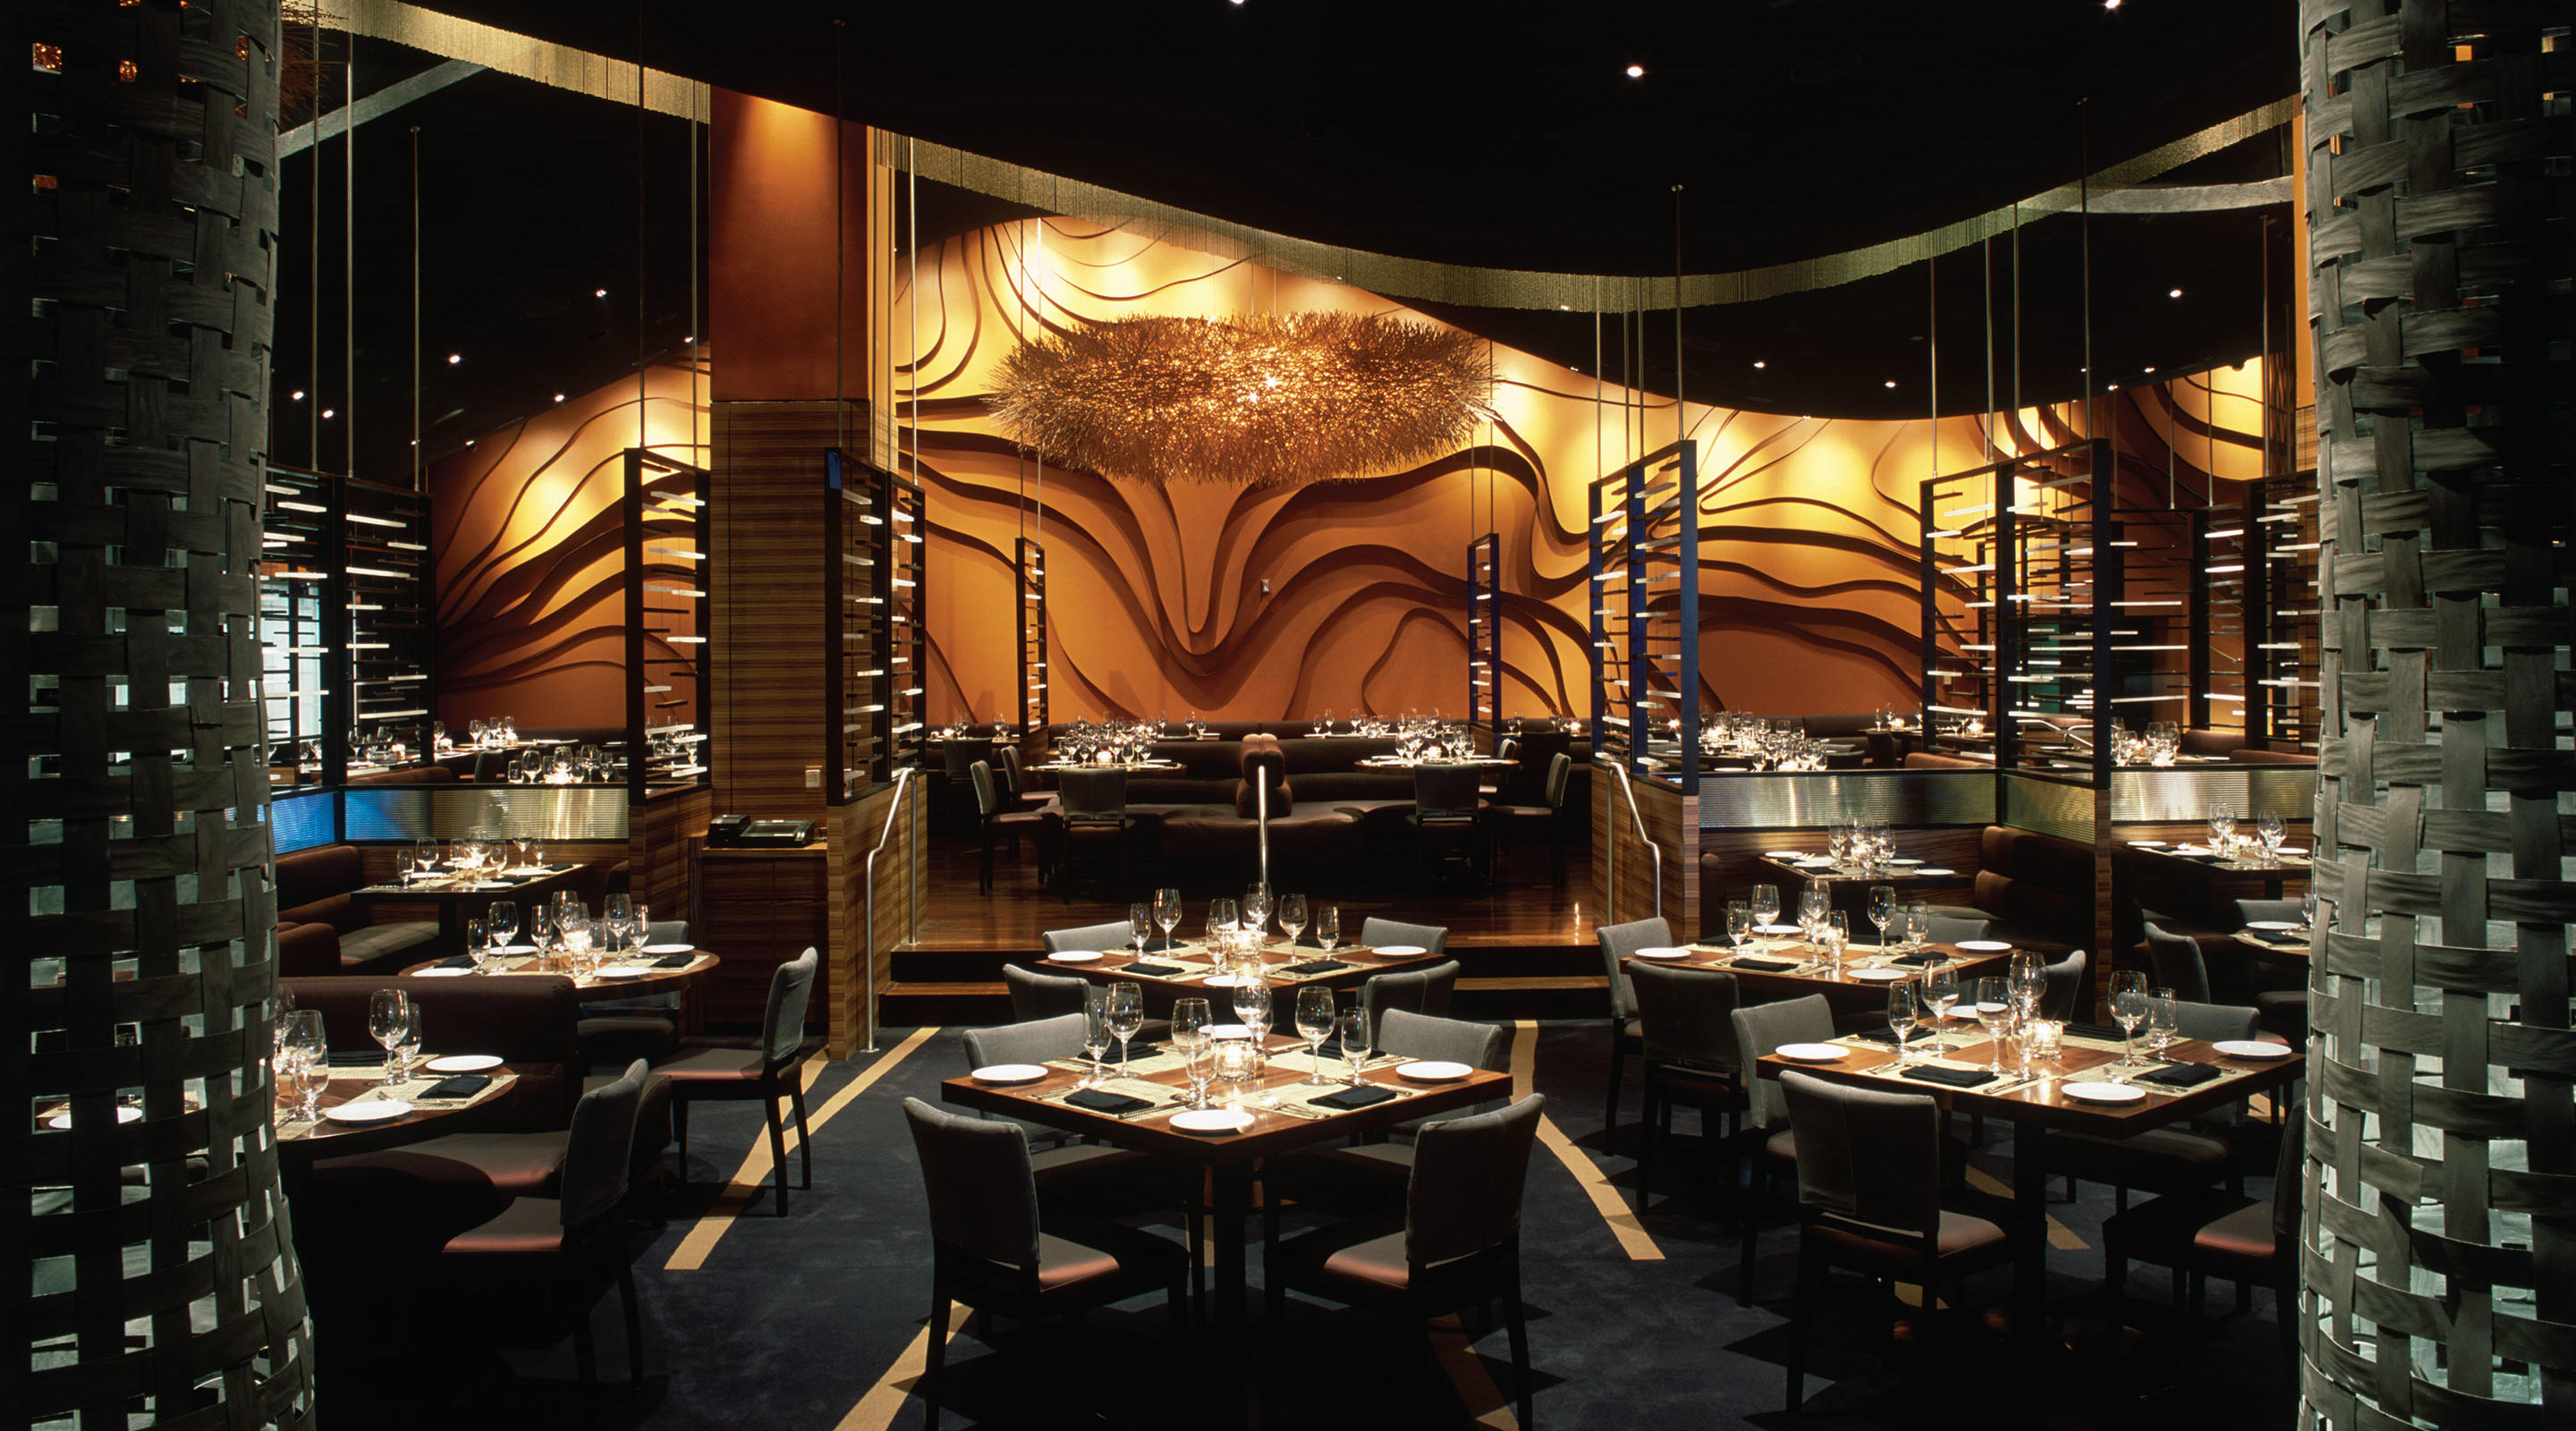 Decoration restaurant new york for Best restaurants with private dining rooms nyc